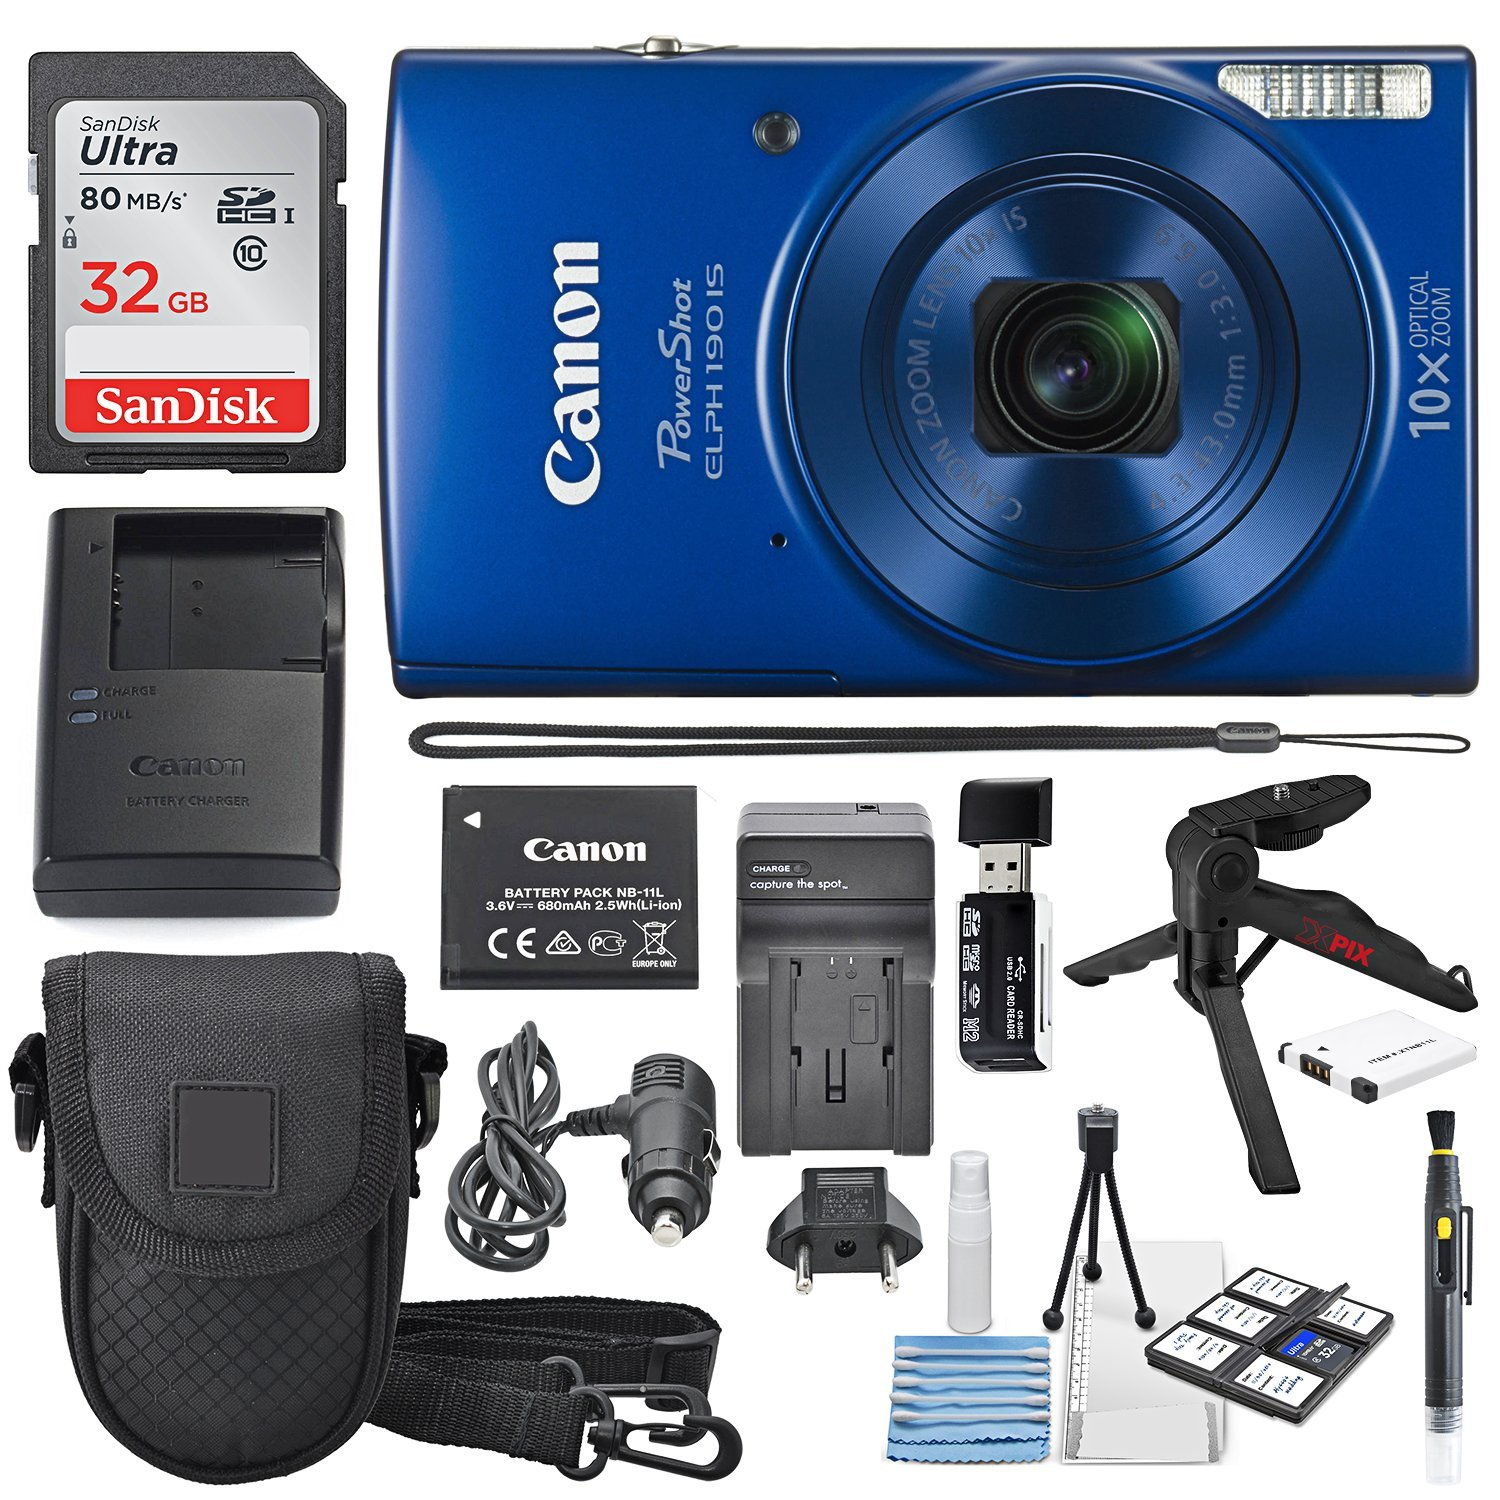 Canon PowerShot ELPH 190 IS Digital Camera (Blue) with 10x Optical Zoom and Built-In Wi-Fi with 32GB SDHC + Flexible tripod + AC/DC Turbo Travel Charger + Replacement battery + Protective camera case by Canon